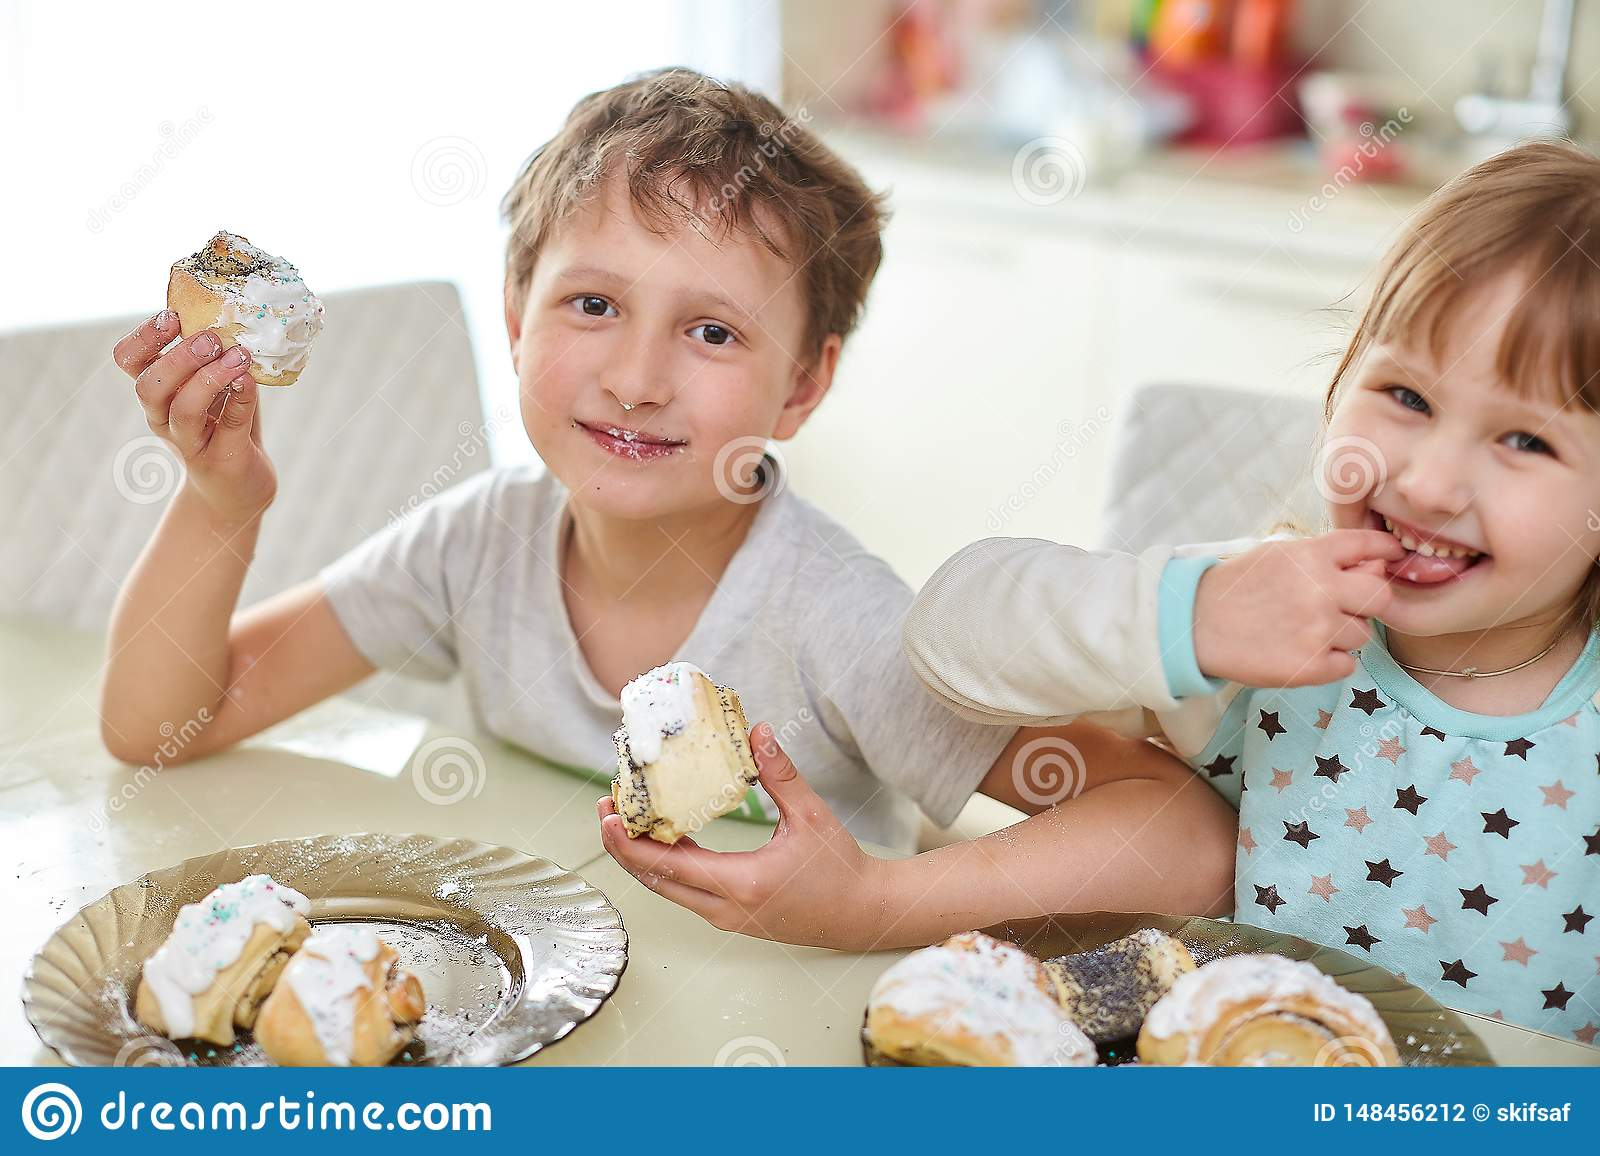 Happy children eat pastries in the bright kitchen at the table